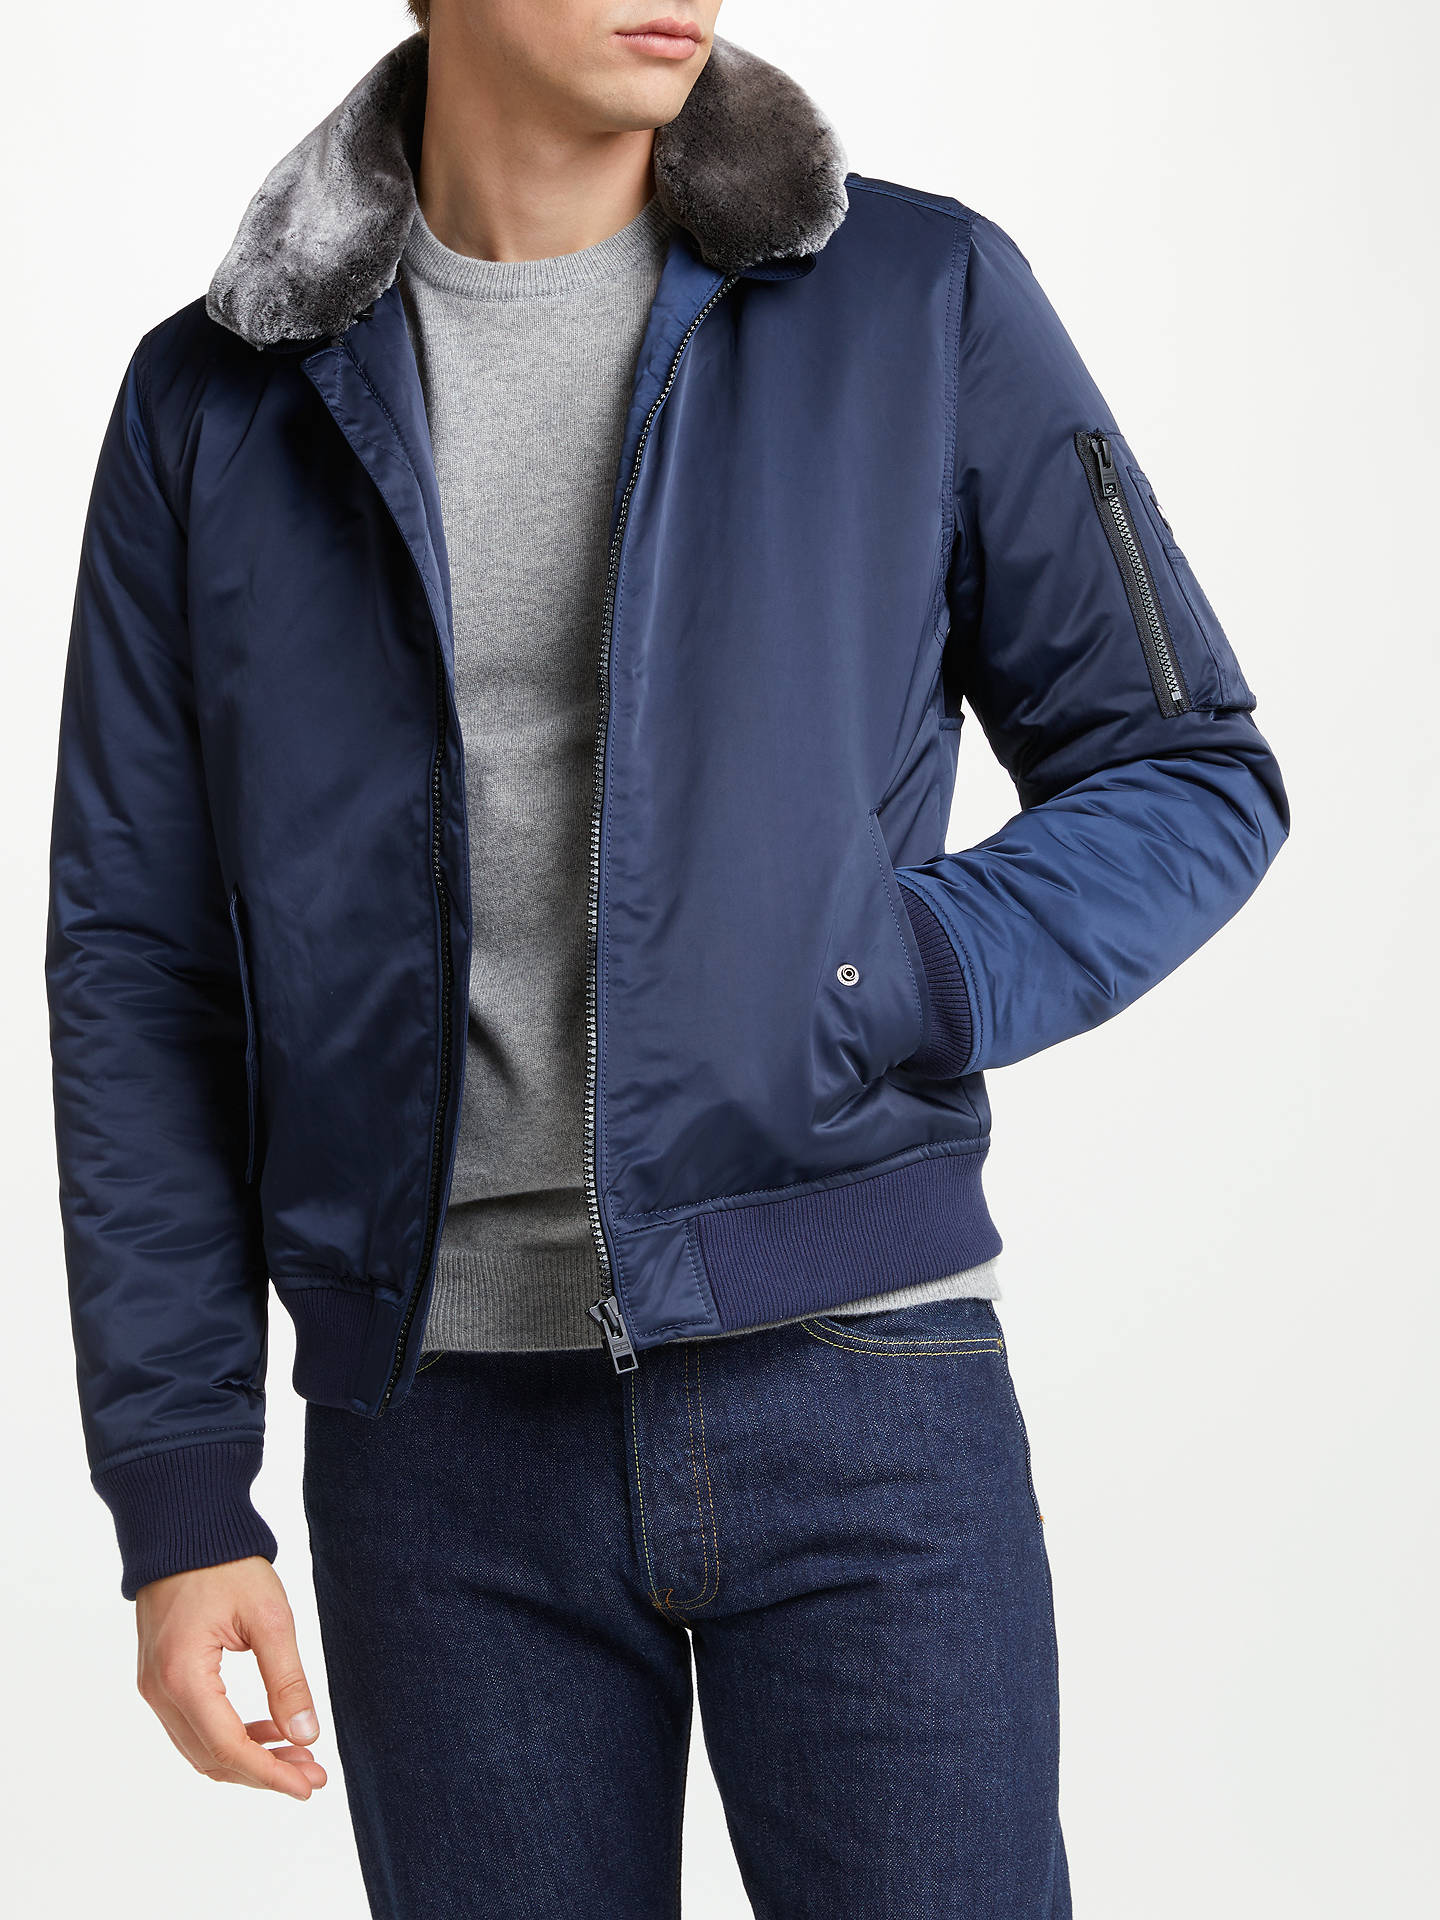 e6eb74aa Buy Tommy Hilfiger Justice Bomber Jacket, Black Iris, S Online at  johnlewis.com ...